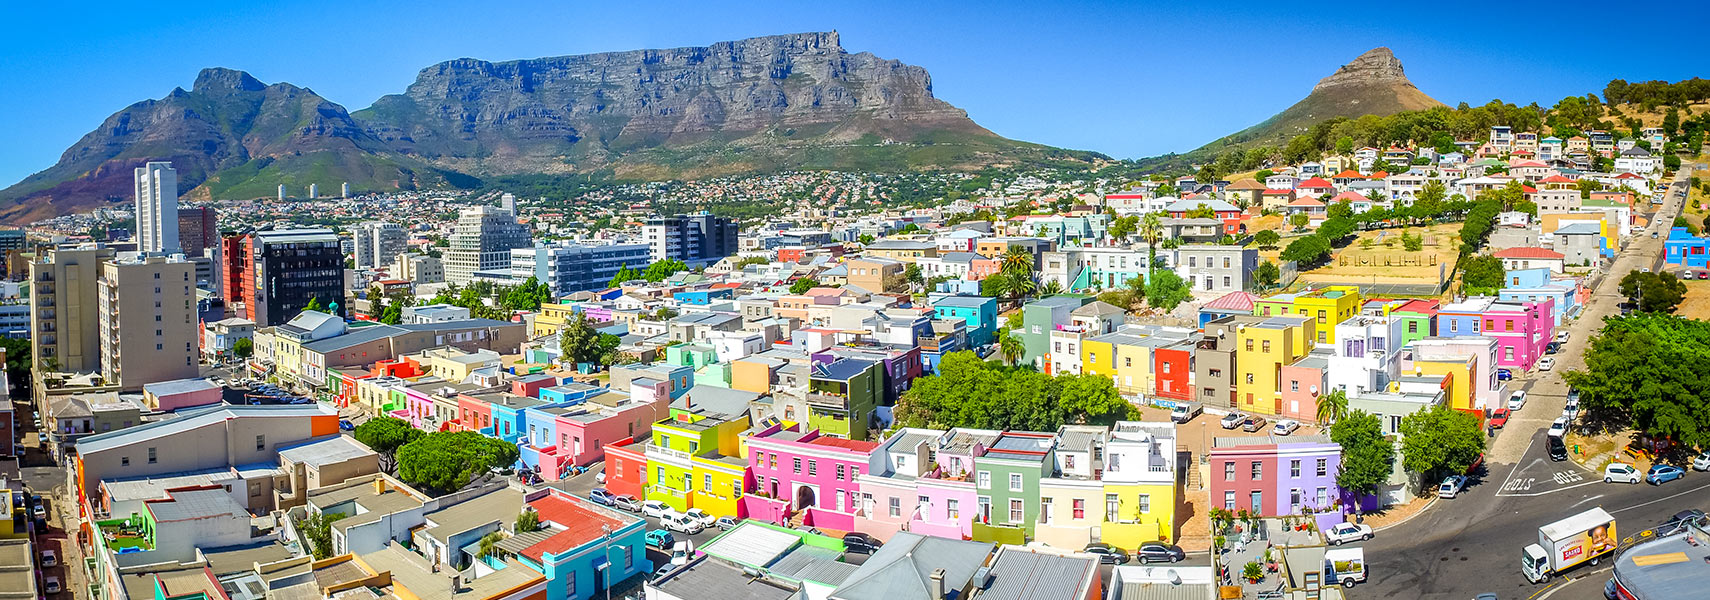 The Bo-Kaap area of Cape Town, South Africa